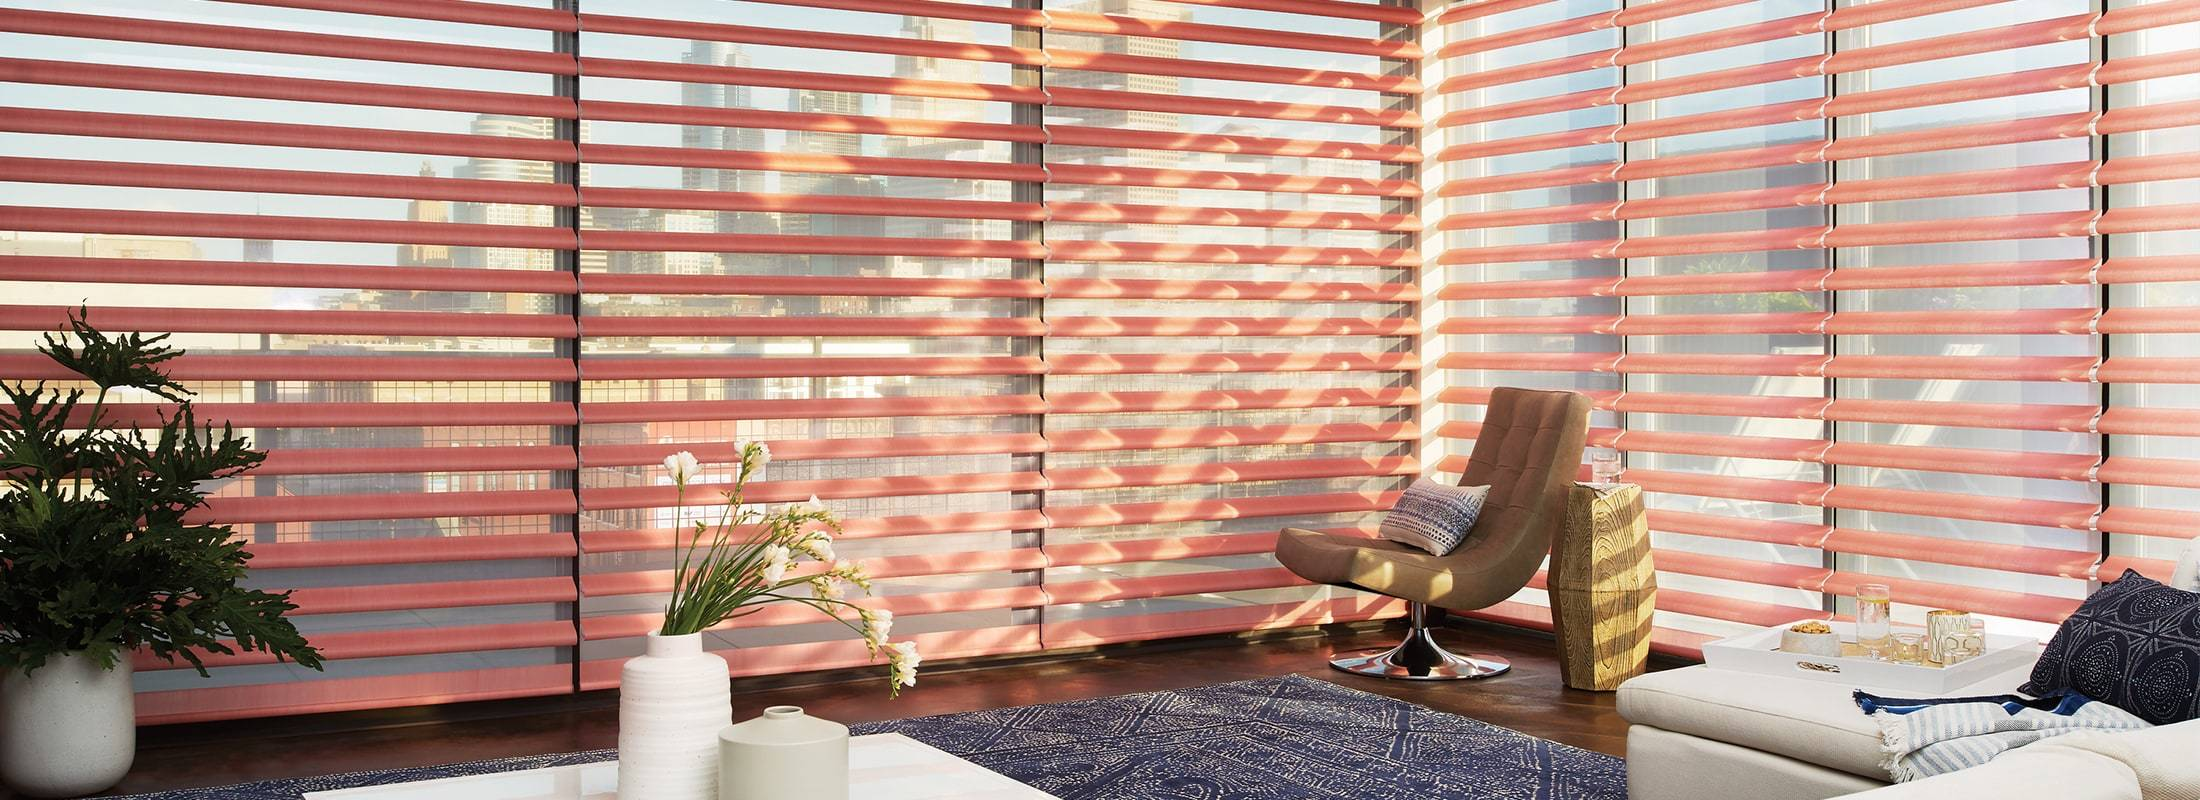 Our innovative Pirouette® Window Shadings feature soft horizontal fabric vanes attached to a single sheer backing. This allows for enhanced views to the outside while maintaining privacy and the full beauty of the fabric on the inside. Learn more about Pirouette® Window Shadings.